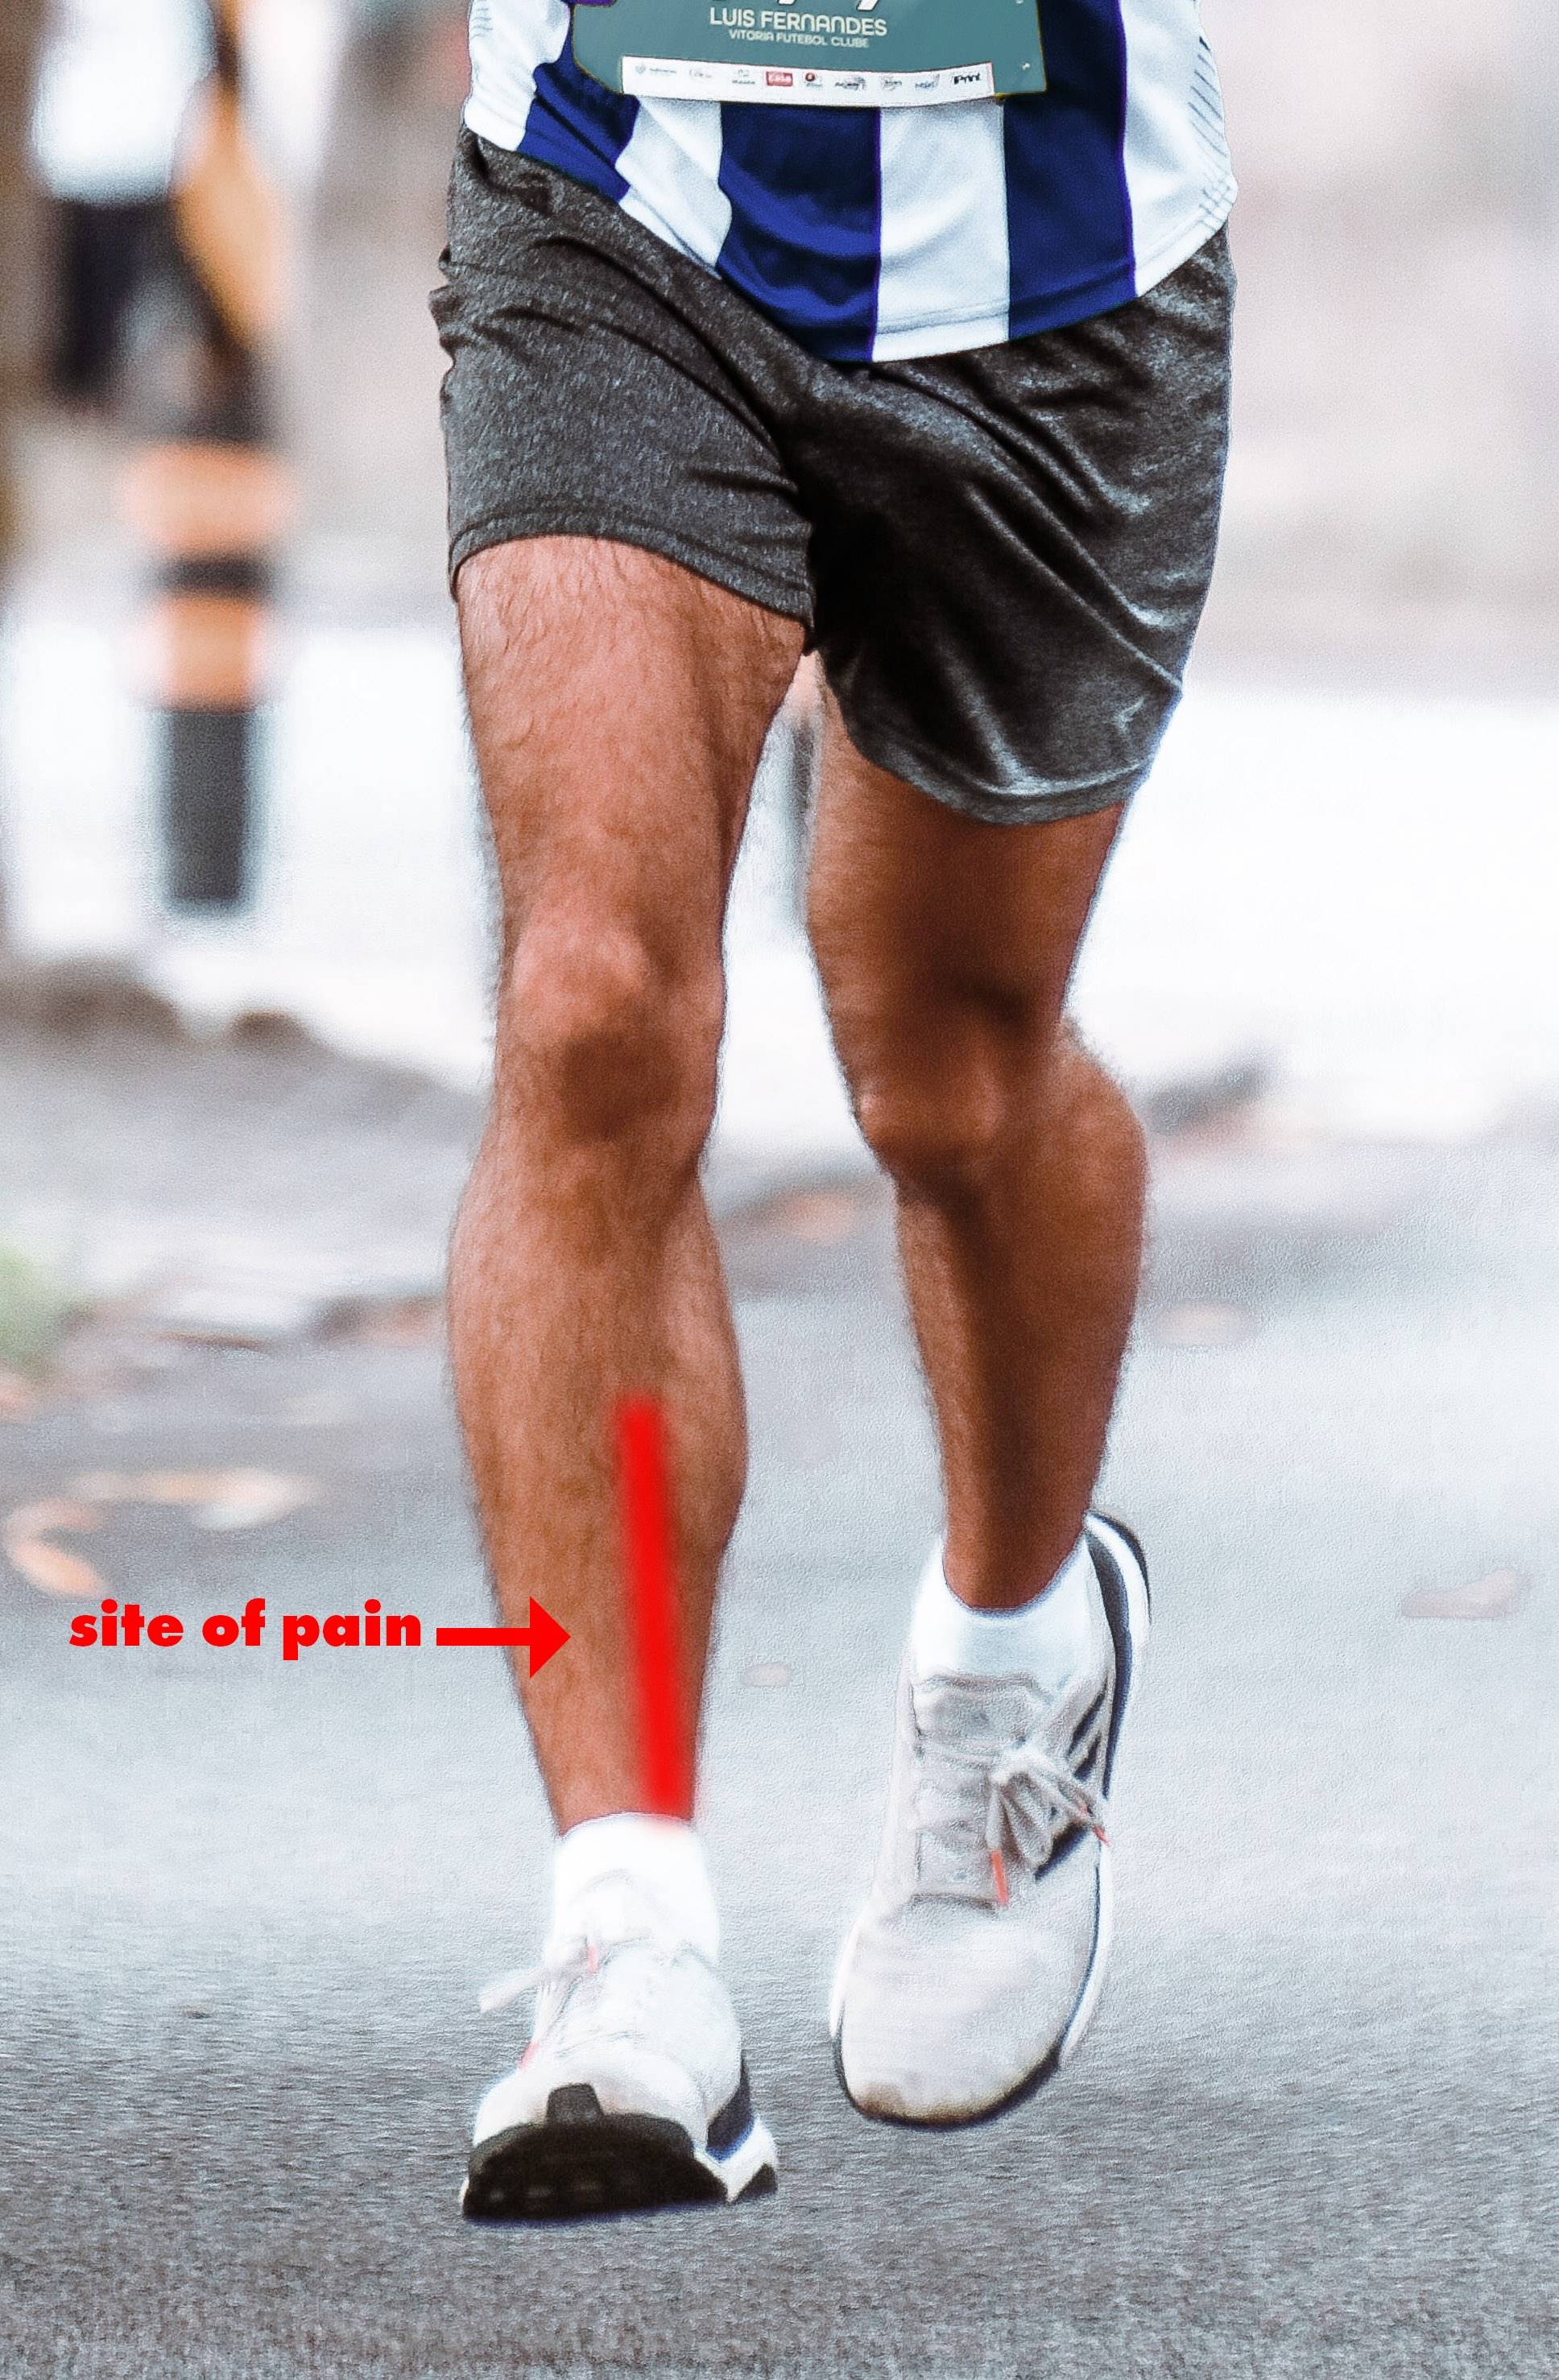 Shin splints or medial tibial stress syndrome is painful